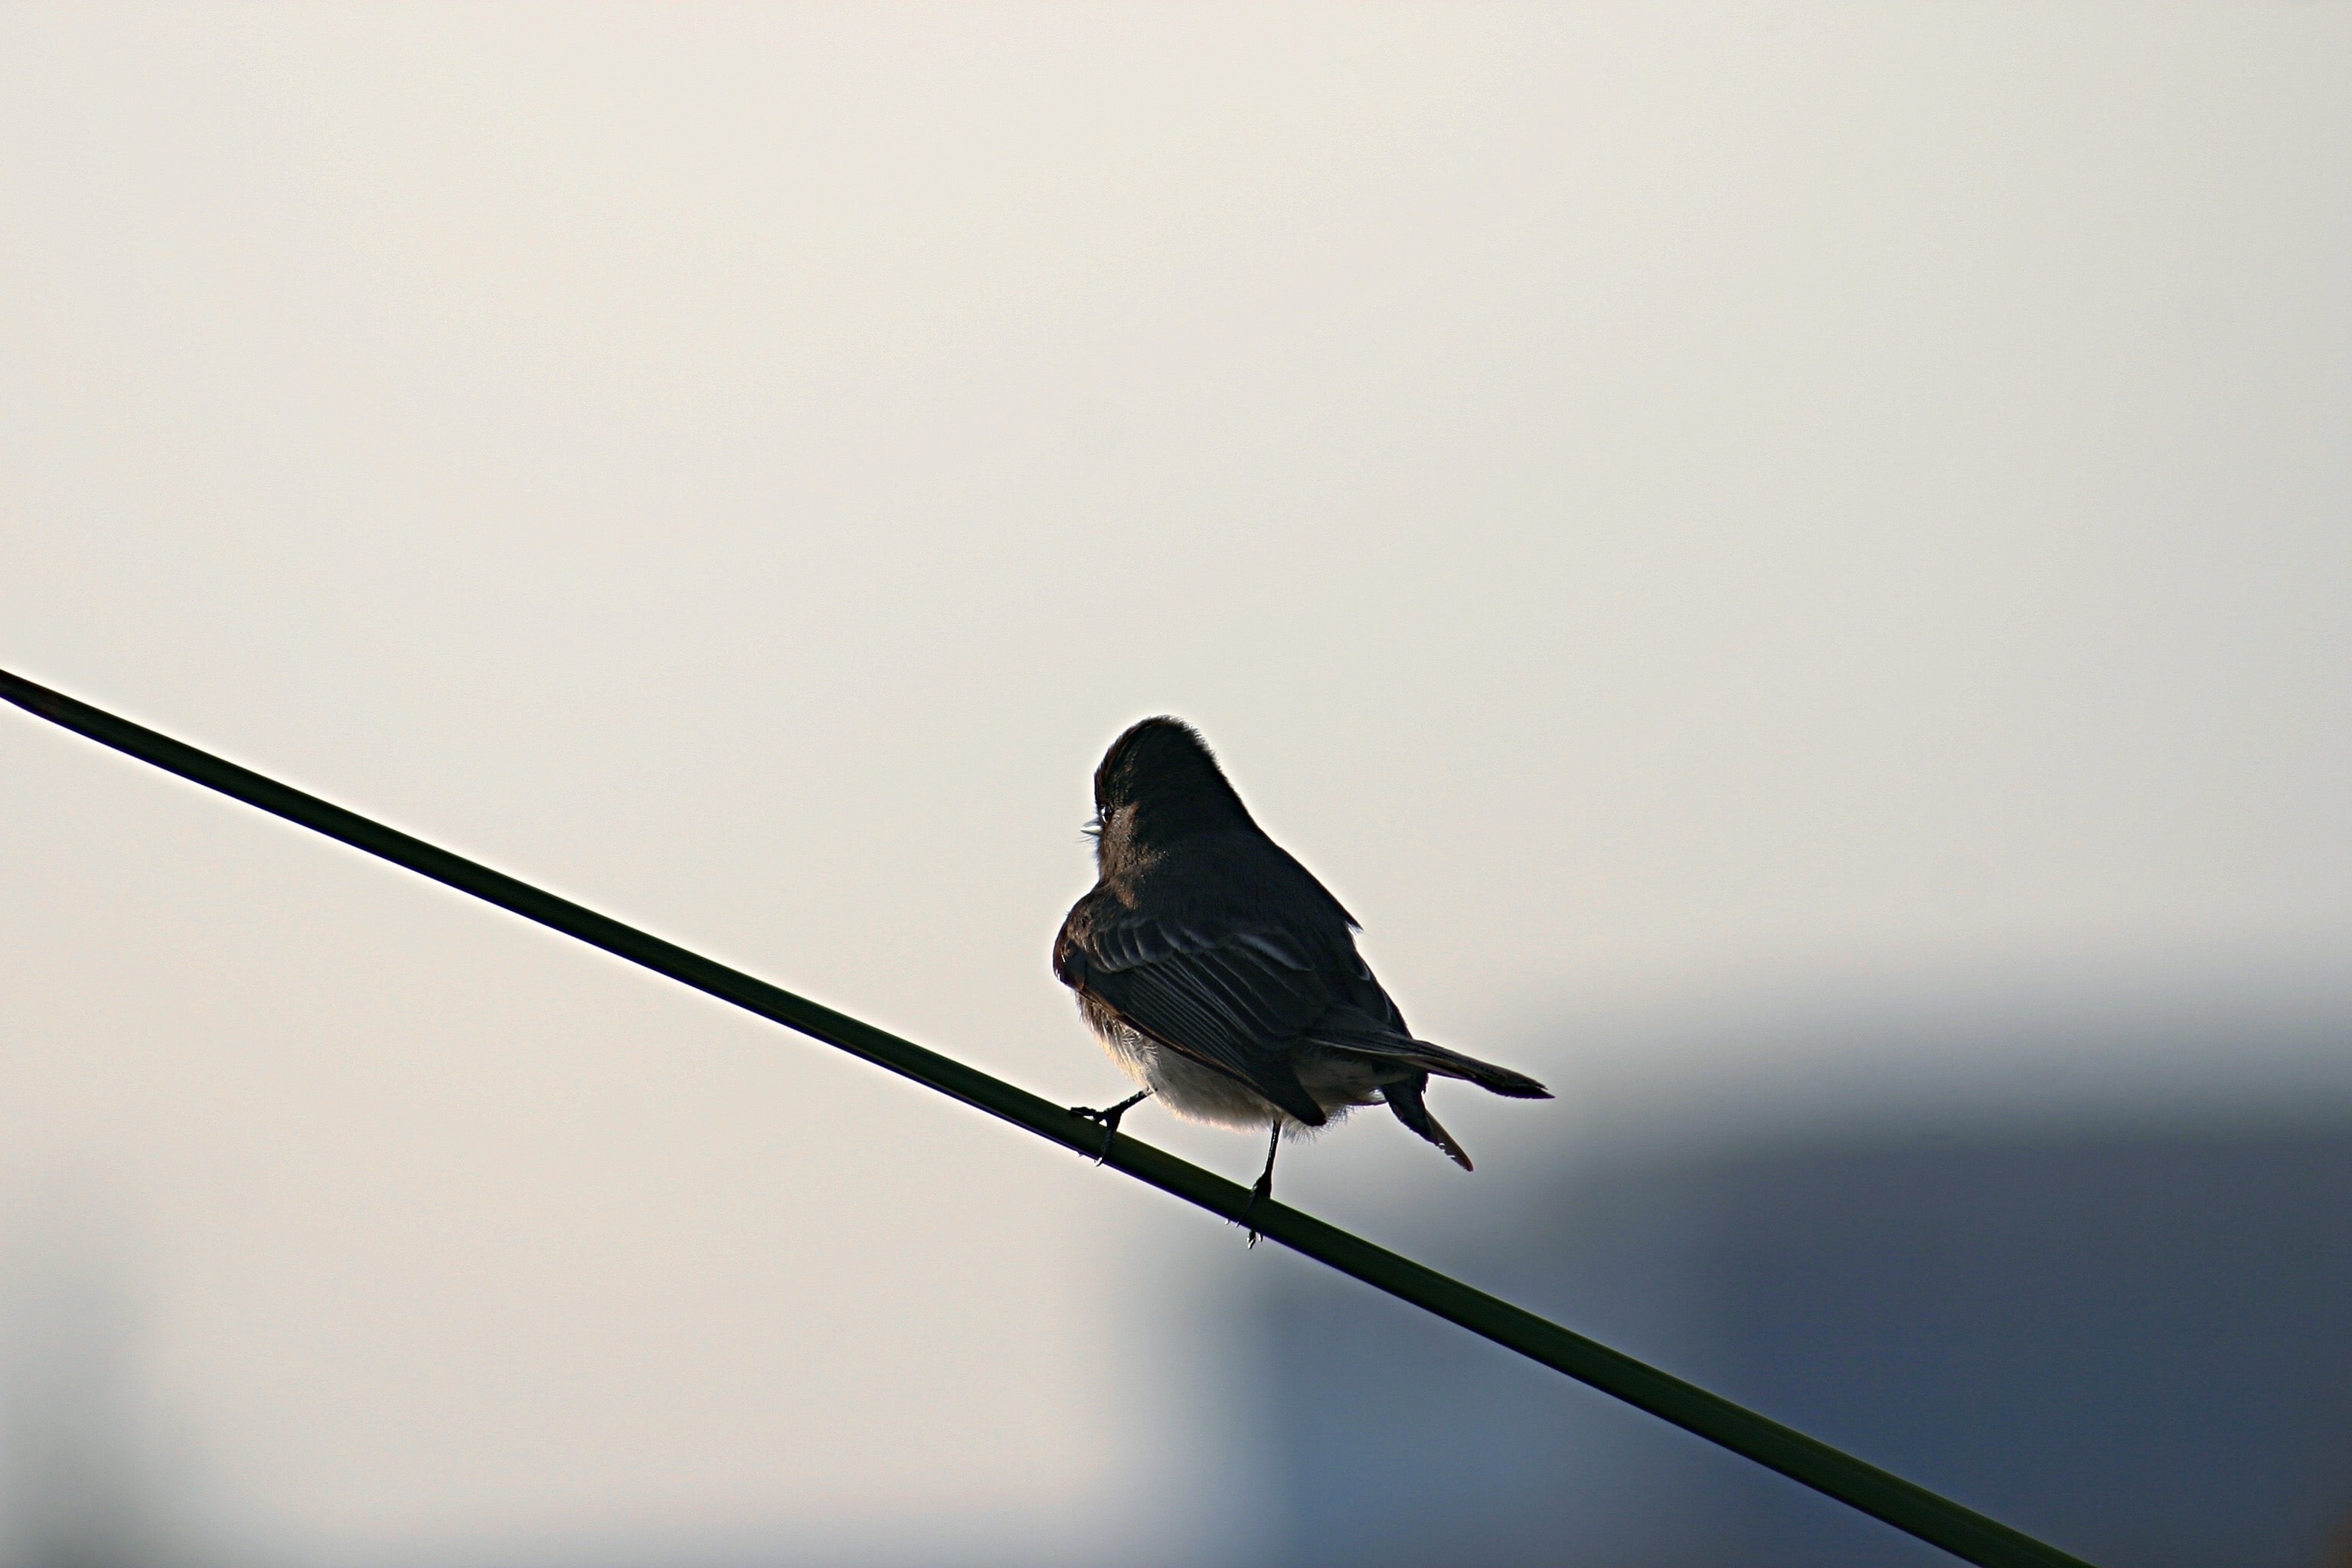 bird perched on wire